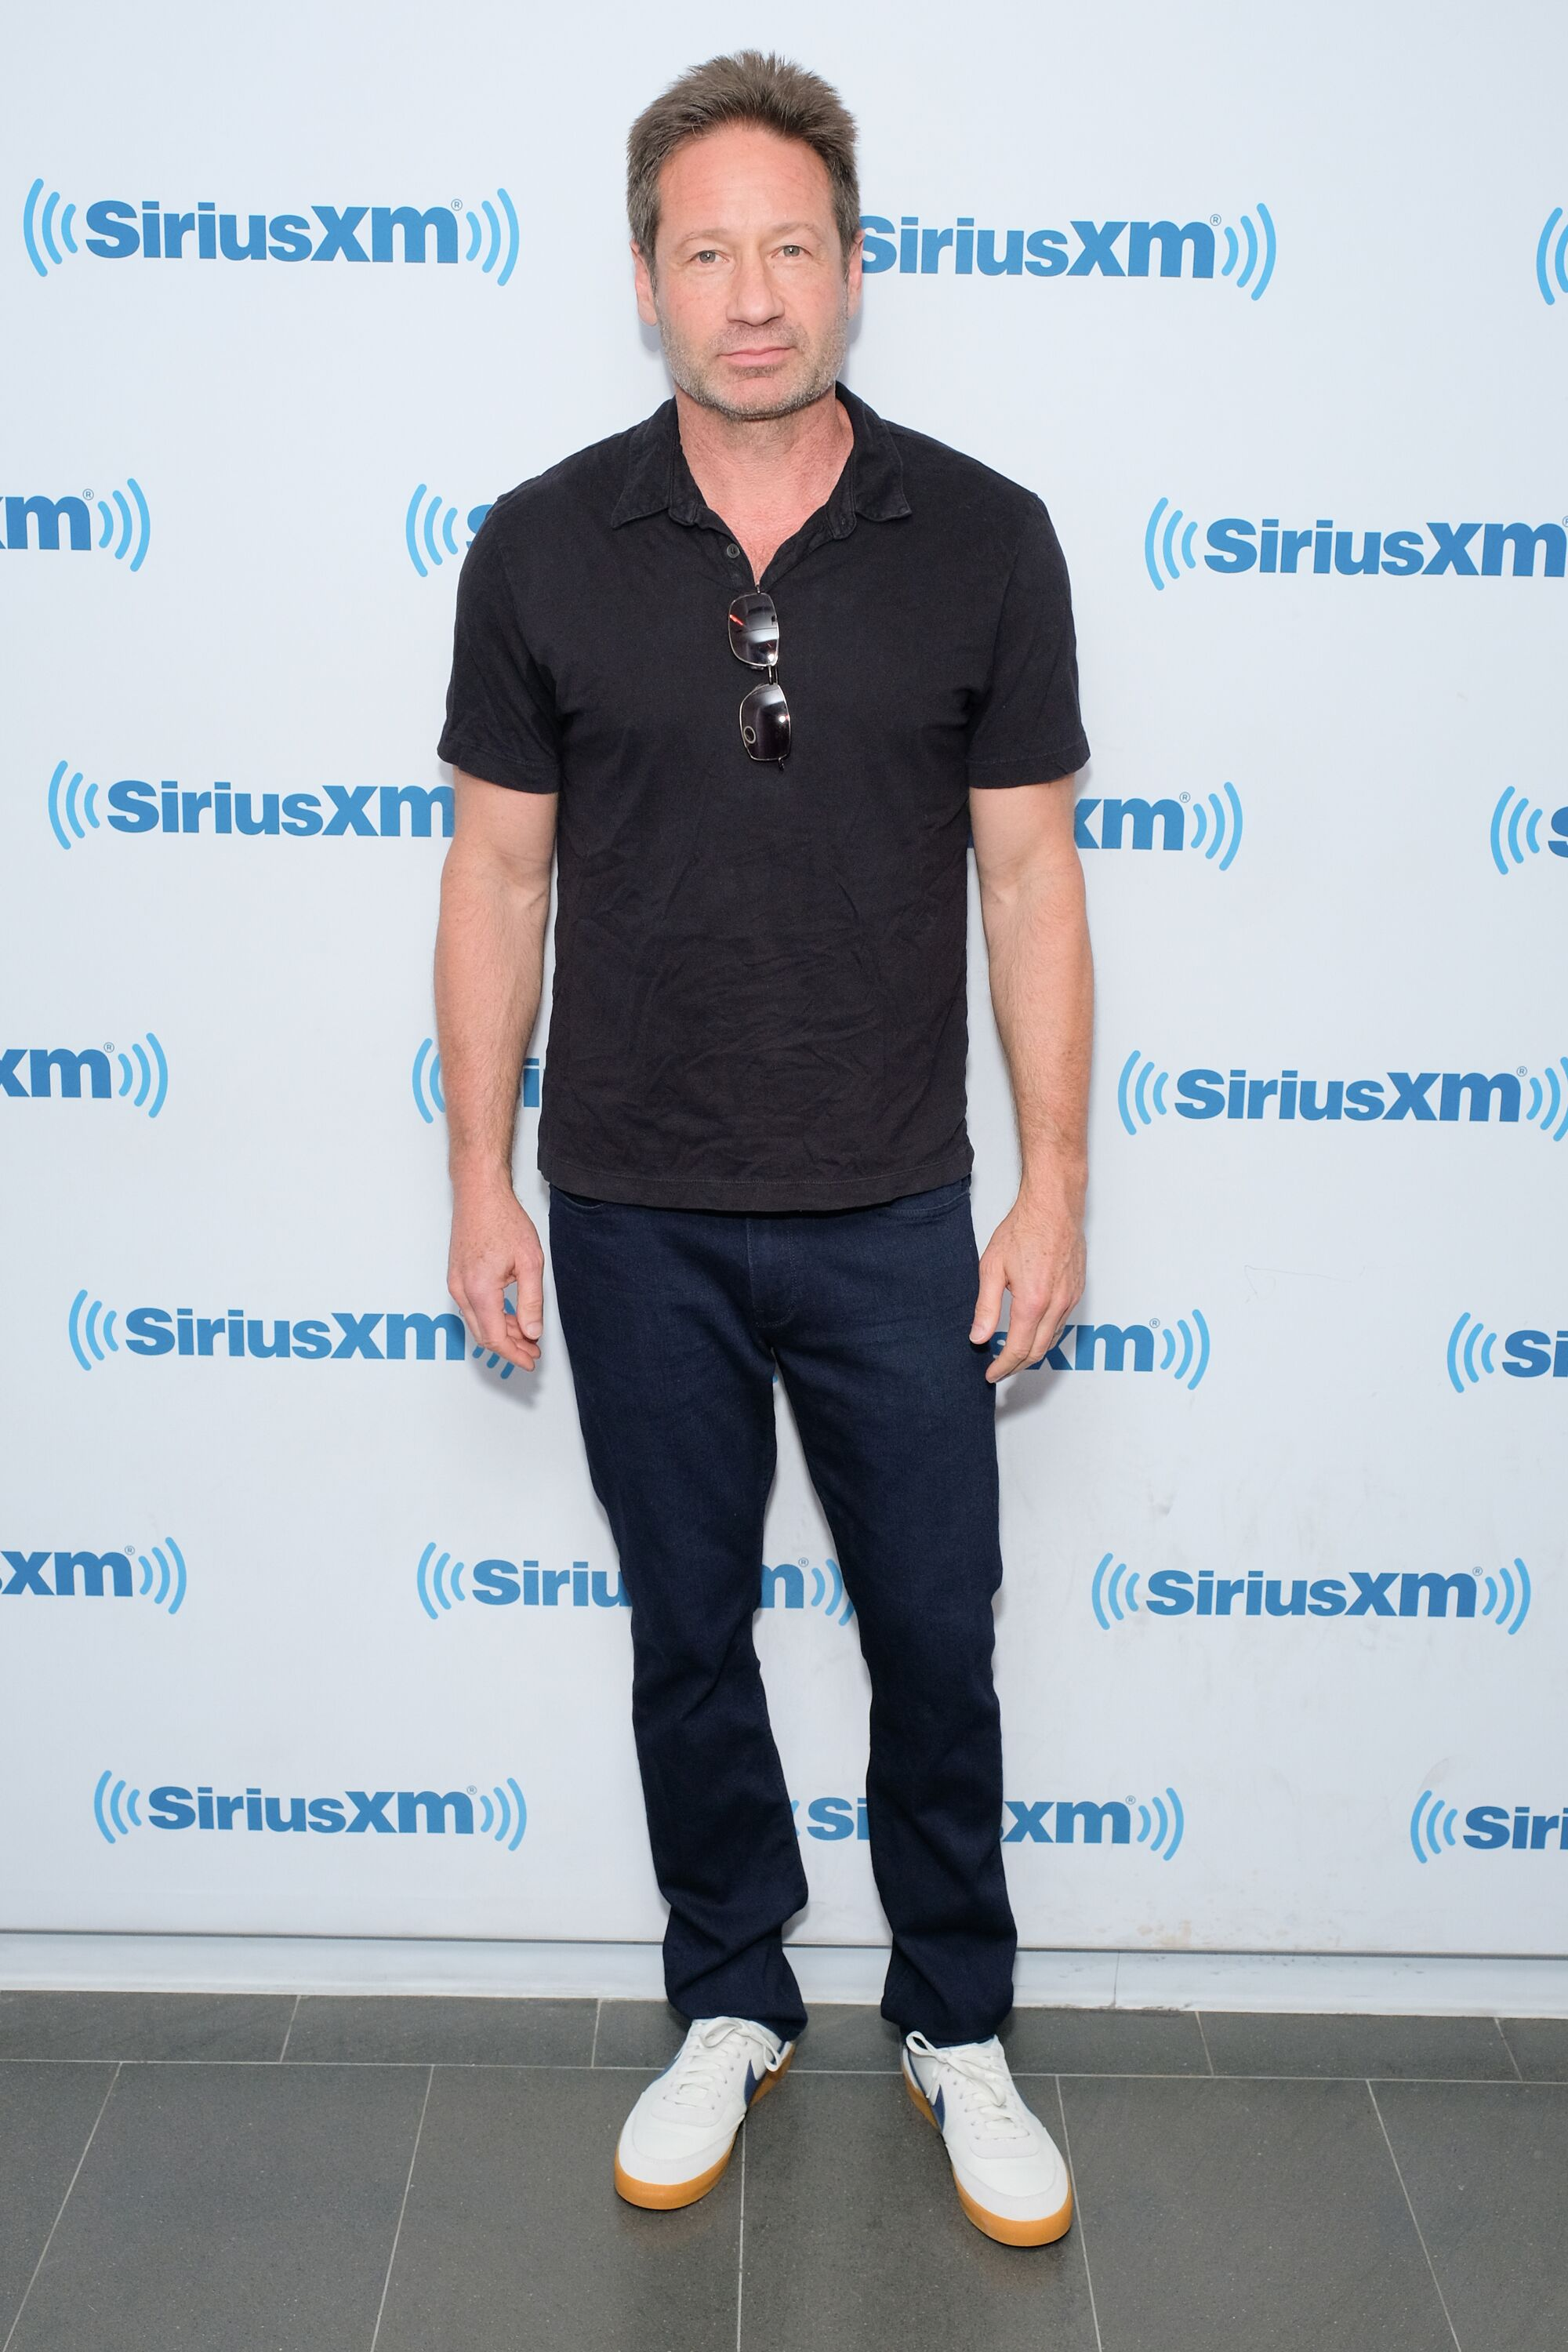 David Duchovny besucht am 14. Mai 2018 die SiriusXM-Studios in New York City. | Quelle: Getty Images